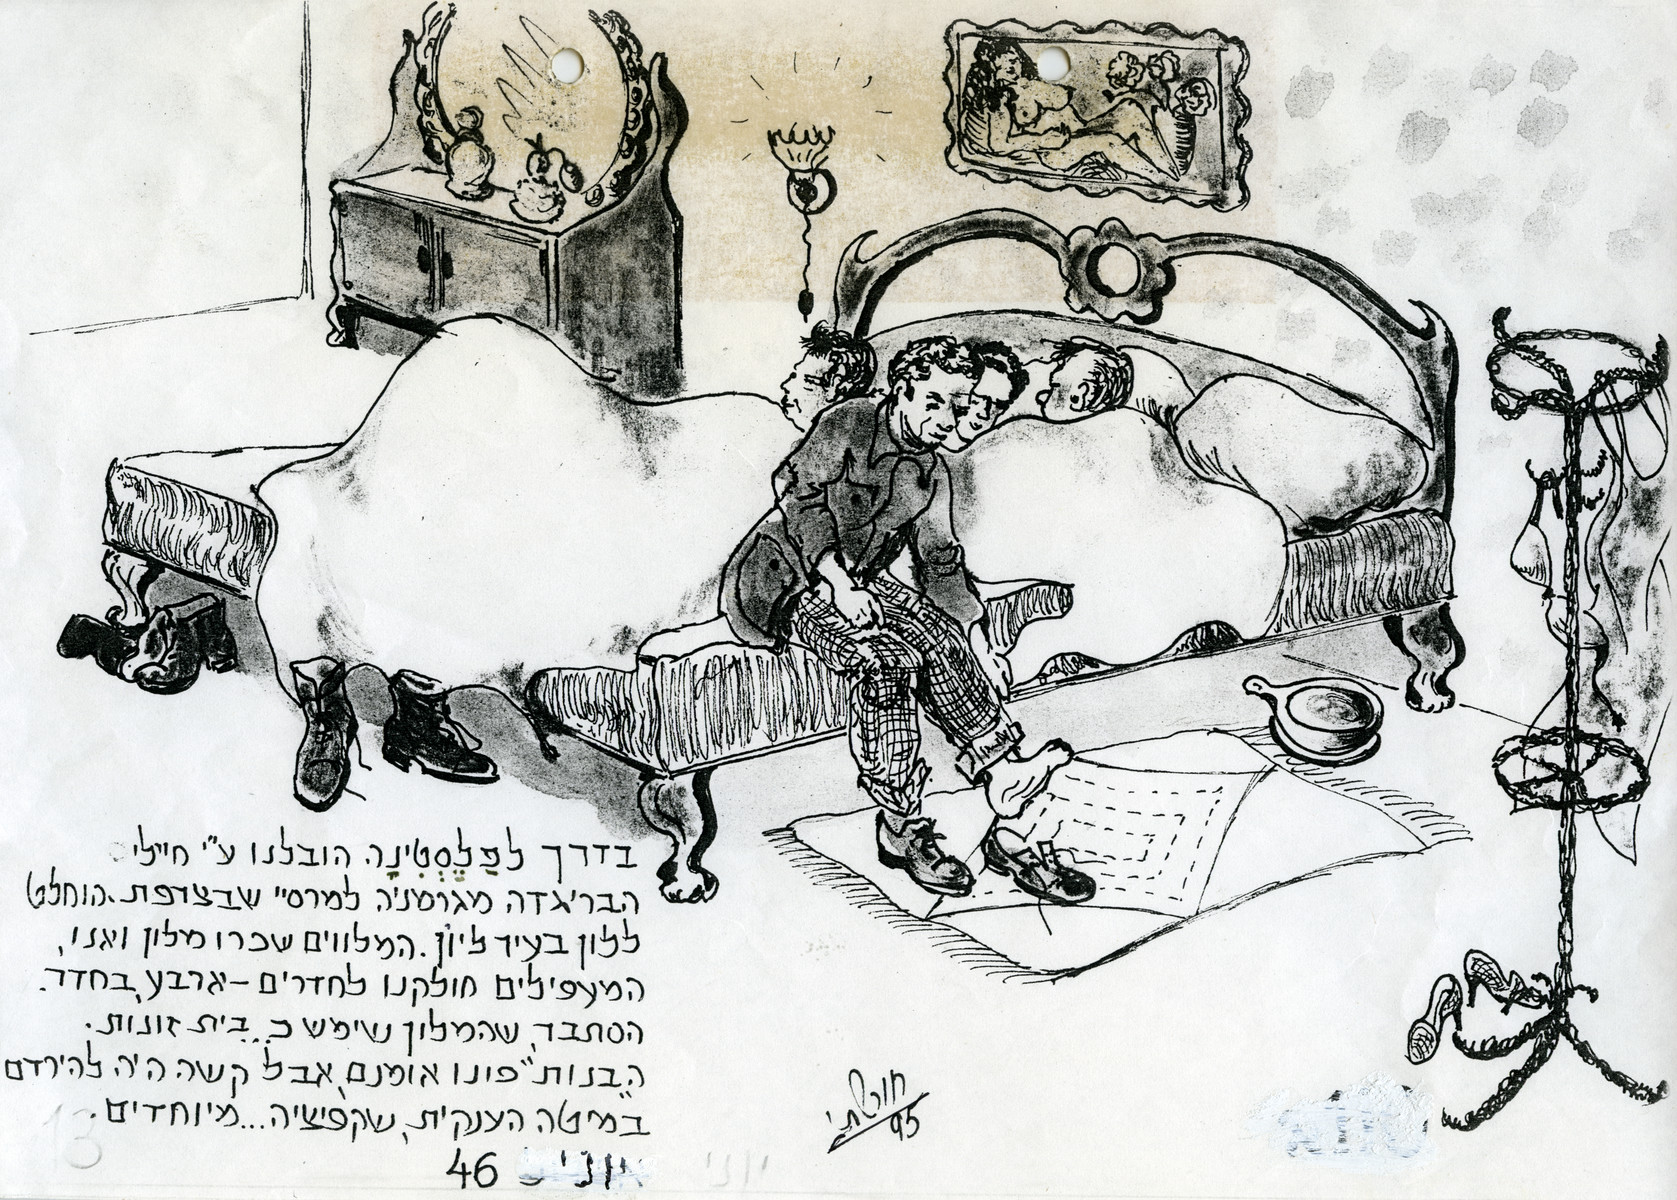 Page of a pictoral memoir drawn by the donor documenting his experiences after the Holocaust.  The drawing depicts Jewish displaced persons sleeping four to a room in a hotel in Lyons while en route to Marseilles to catch a ship to Palestine. [Chronologcally this drawing follows w/s 55077]